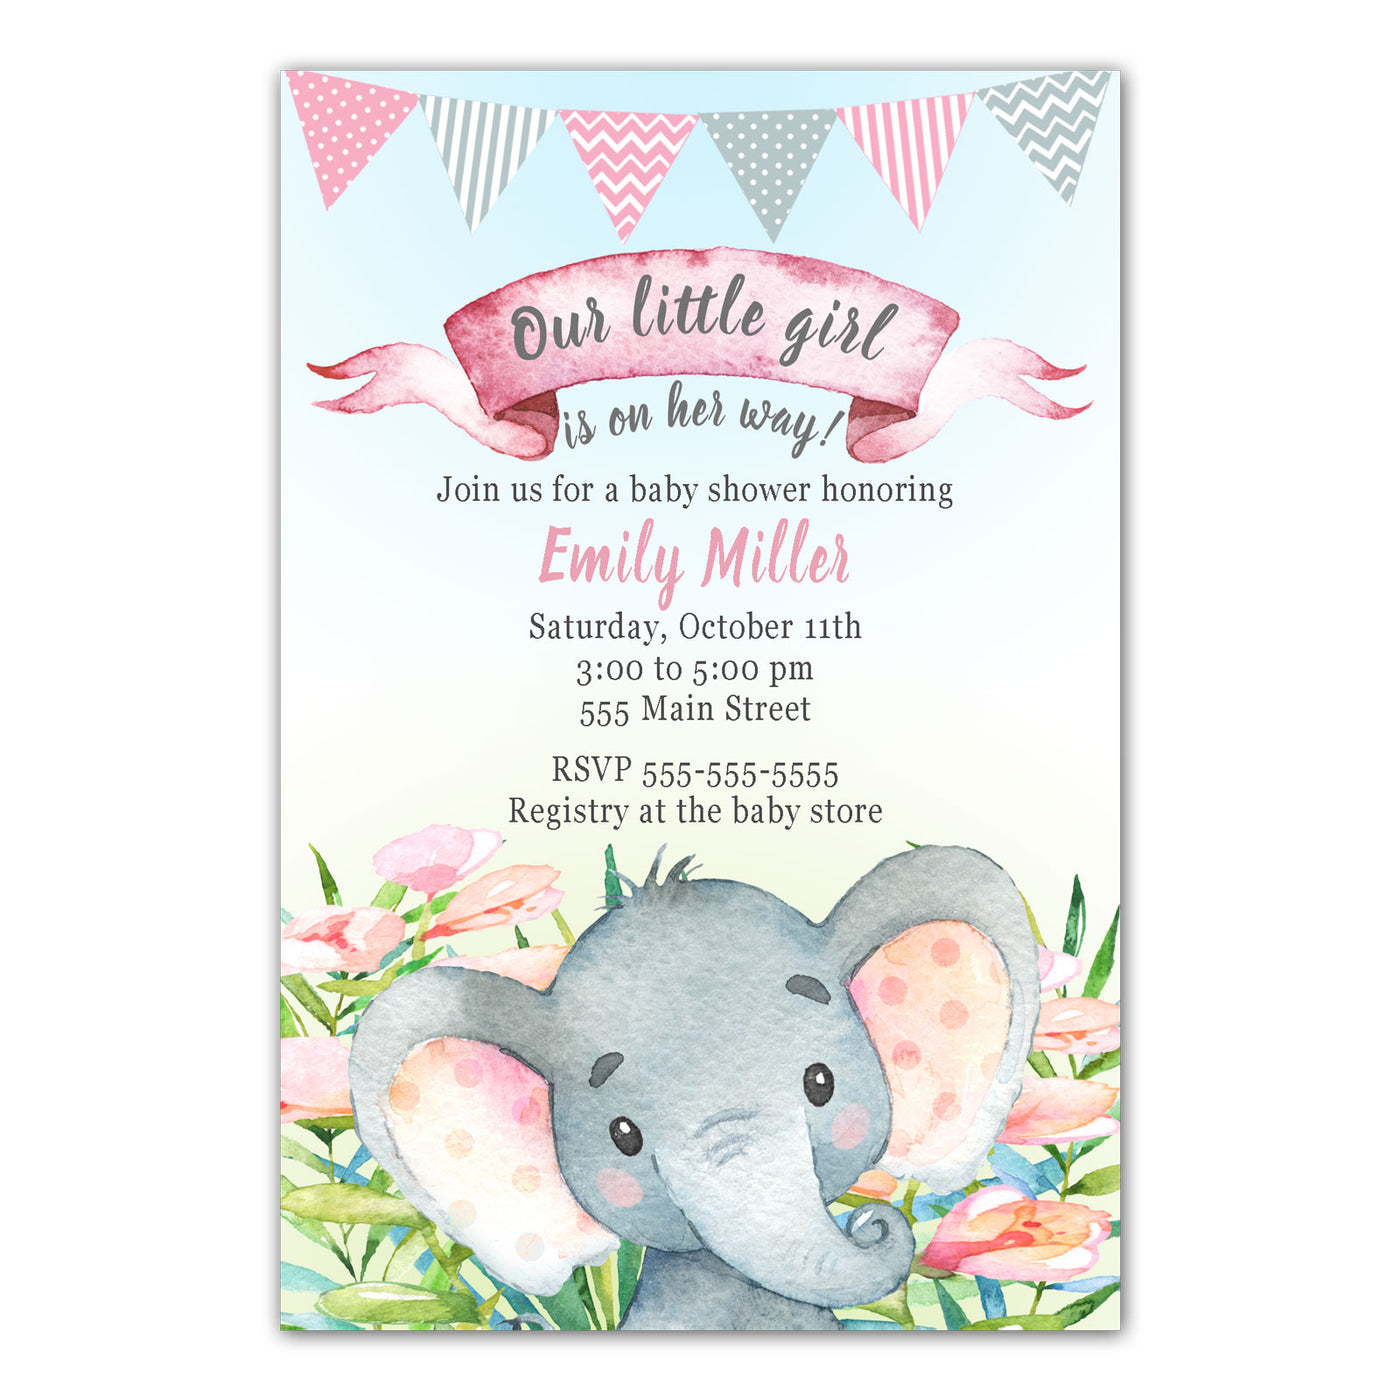 30 Elephant Invitations Watercolor Painted Girl Baby Shower Birthday